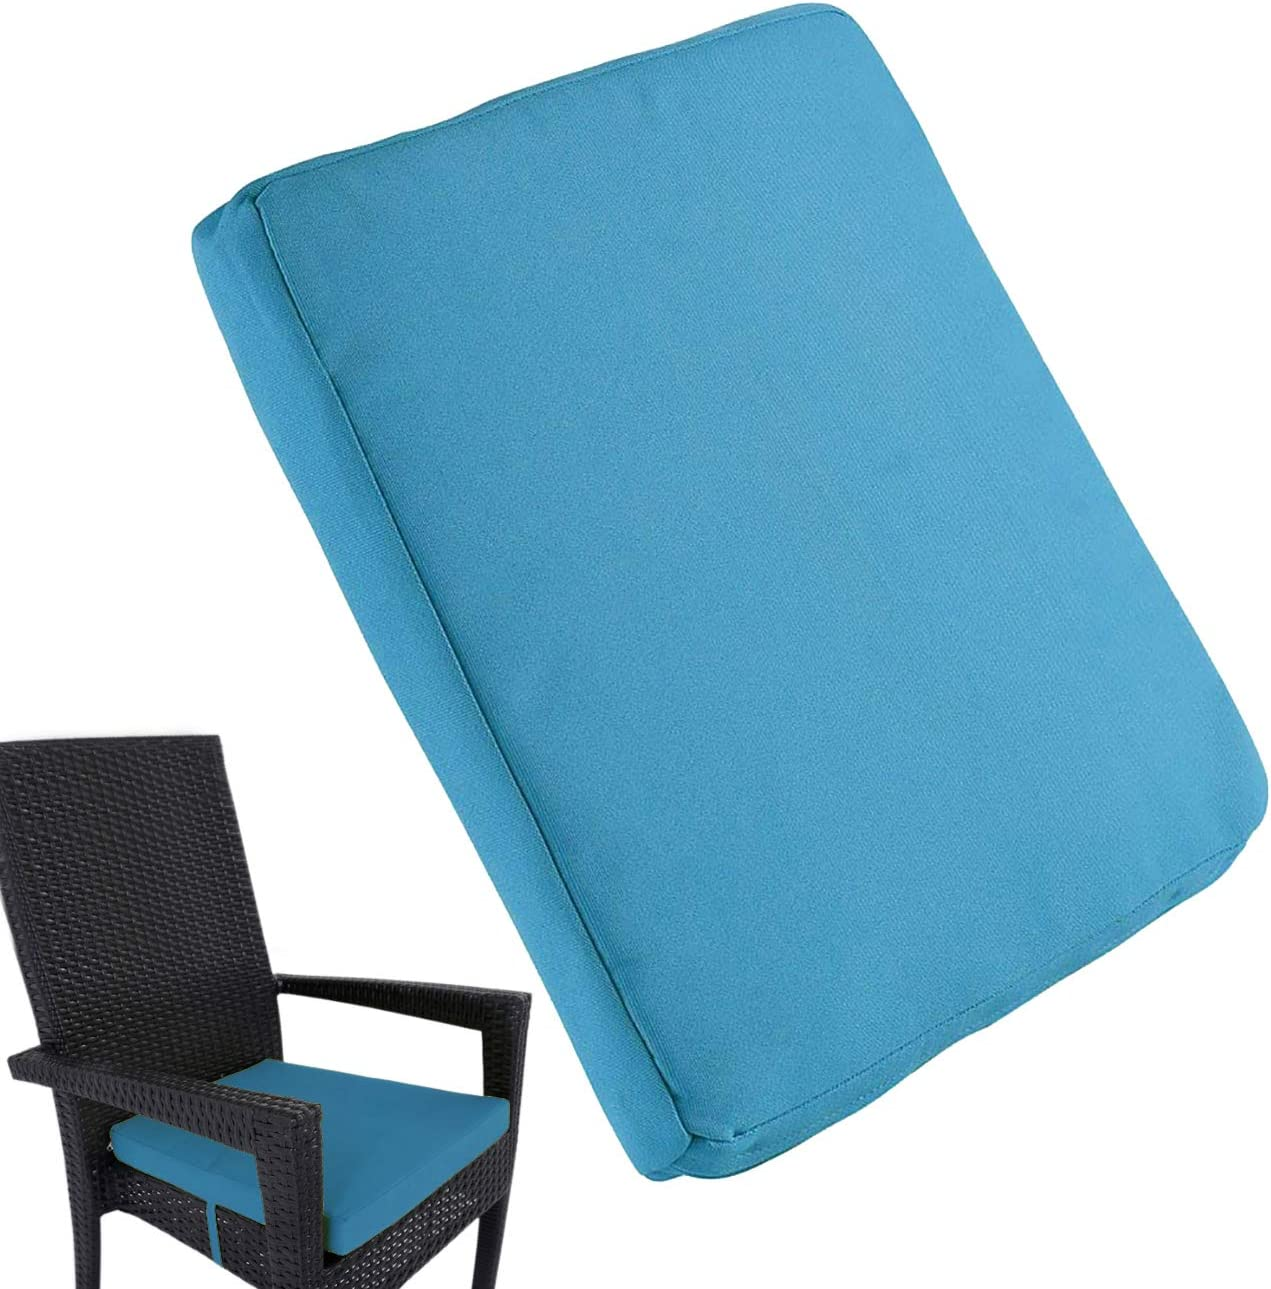 Uheng 6 Pack Patio Outdoor Chair Cushions with Ties, Seat Pads Mat, Waterproof Removable Cover, Comfort Memory Foam Nonslip for Garden Deck Picnic Beach Pool -18 X 18 Blue